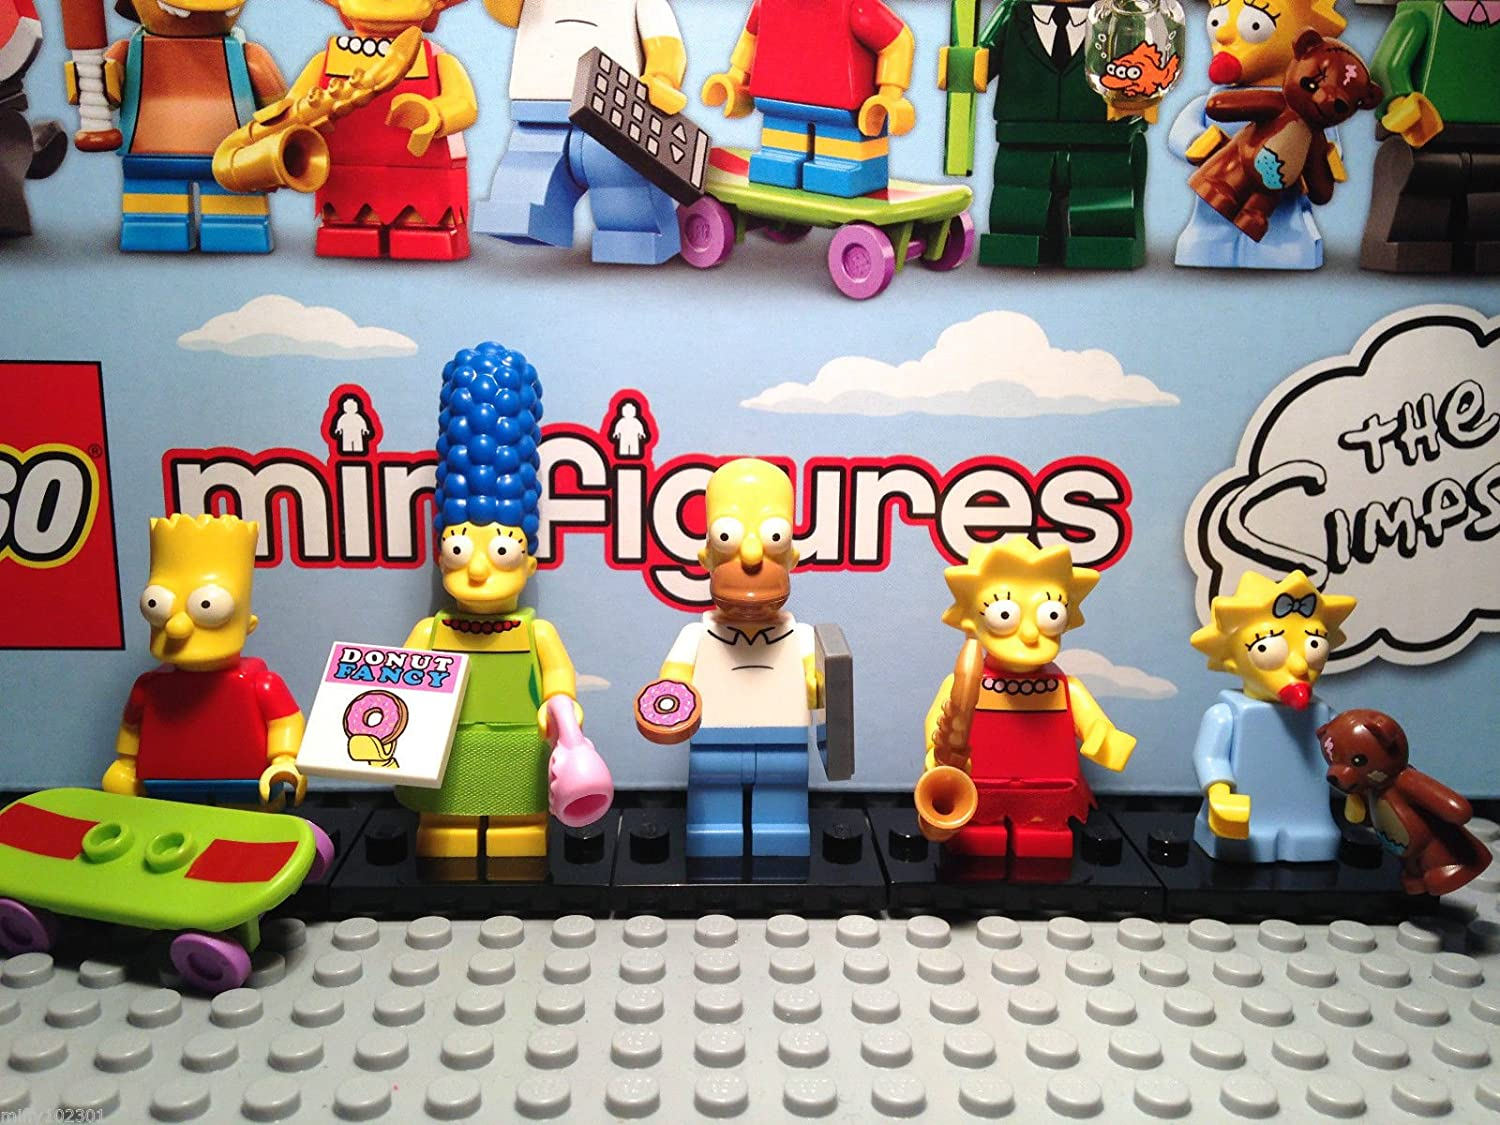 LEGO 71005 Simpsons Minifigures Series 13 - 10 Random Packs